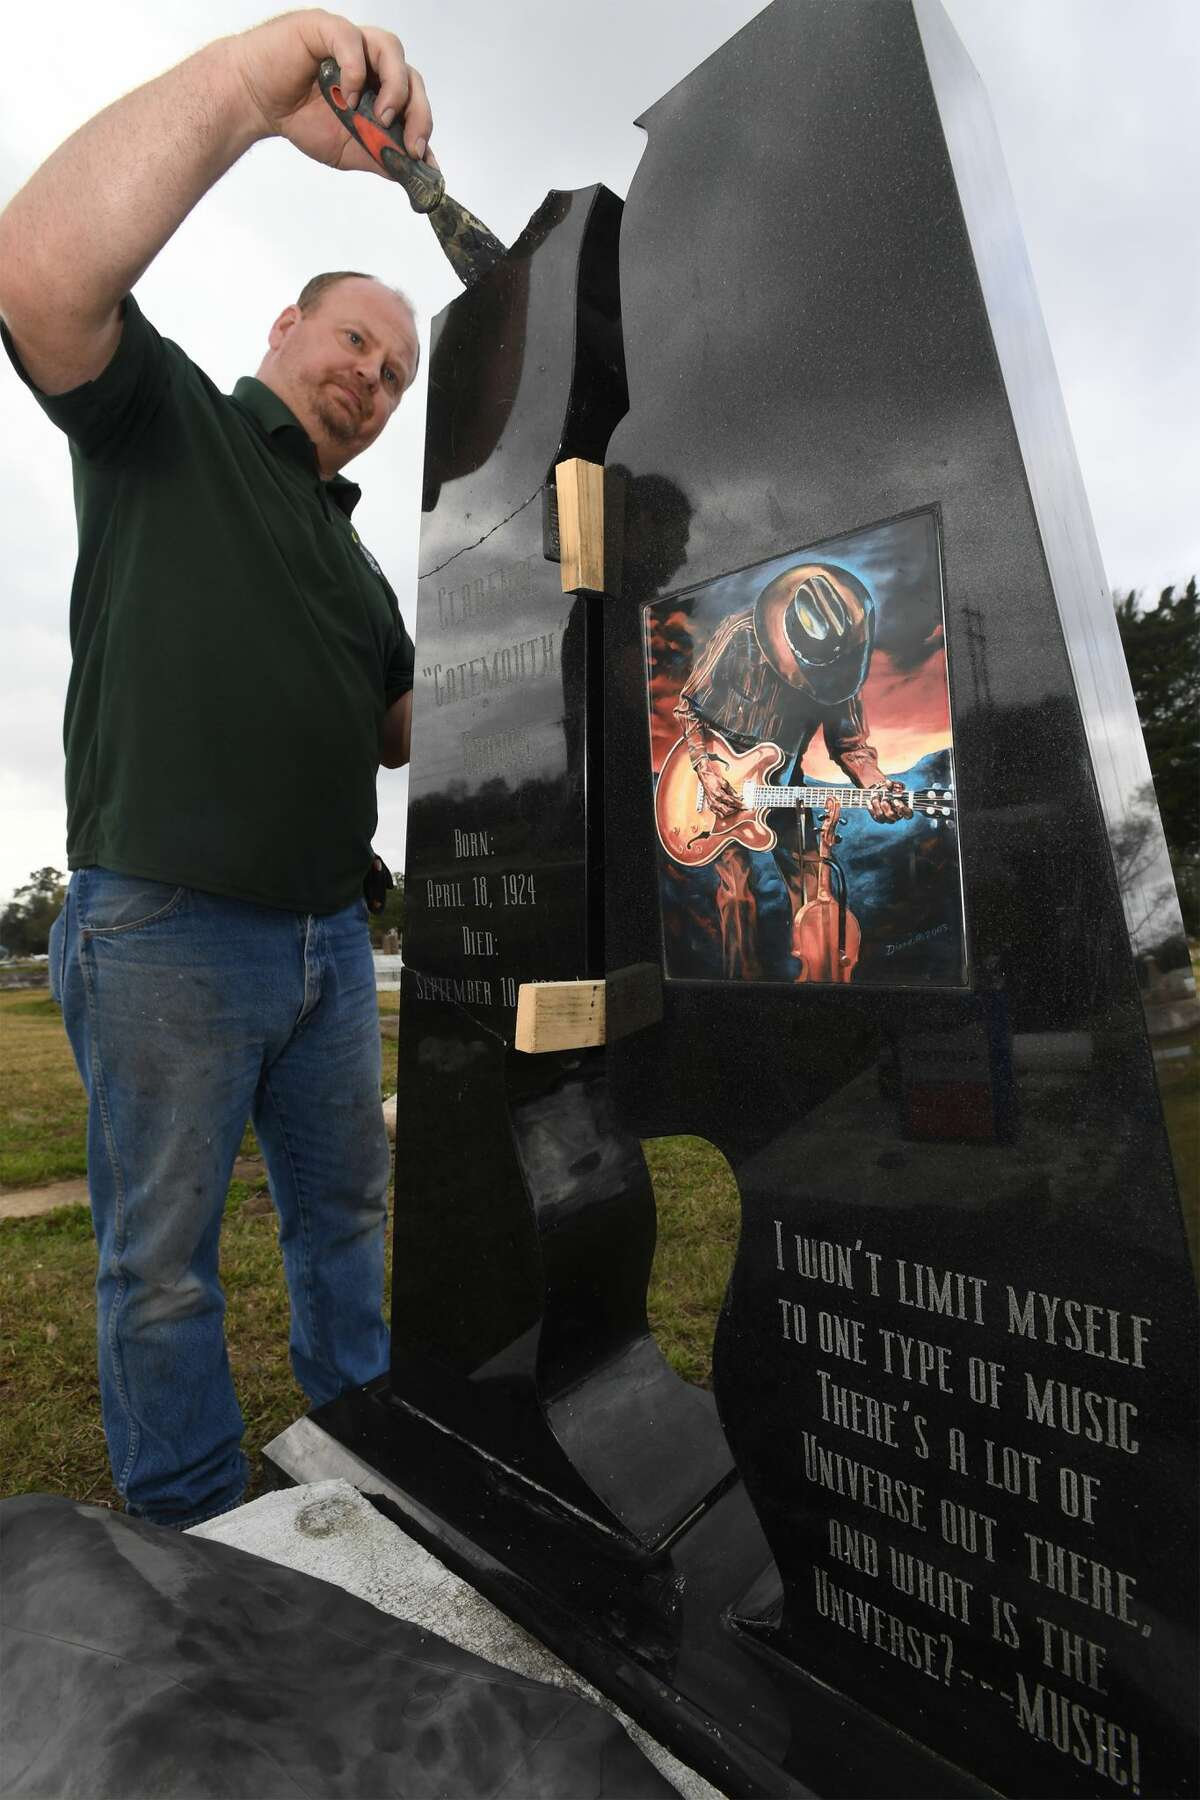 Derrick DeYoung of High Cross Monument repairs Clarence 'Gatemouth' Browns headstone at Orange's Hollywood Cemetery on Friday. Several large pieces of the iconic bluesmen's marker were broken off during Tropical Storm Harvey. Photo taken Friday, 2/15/19